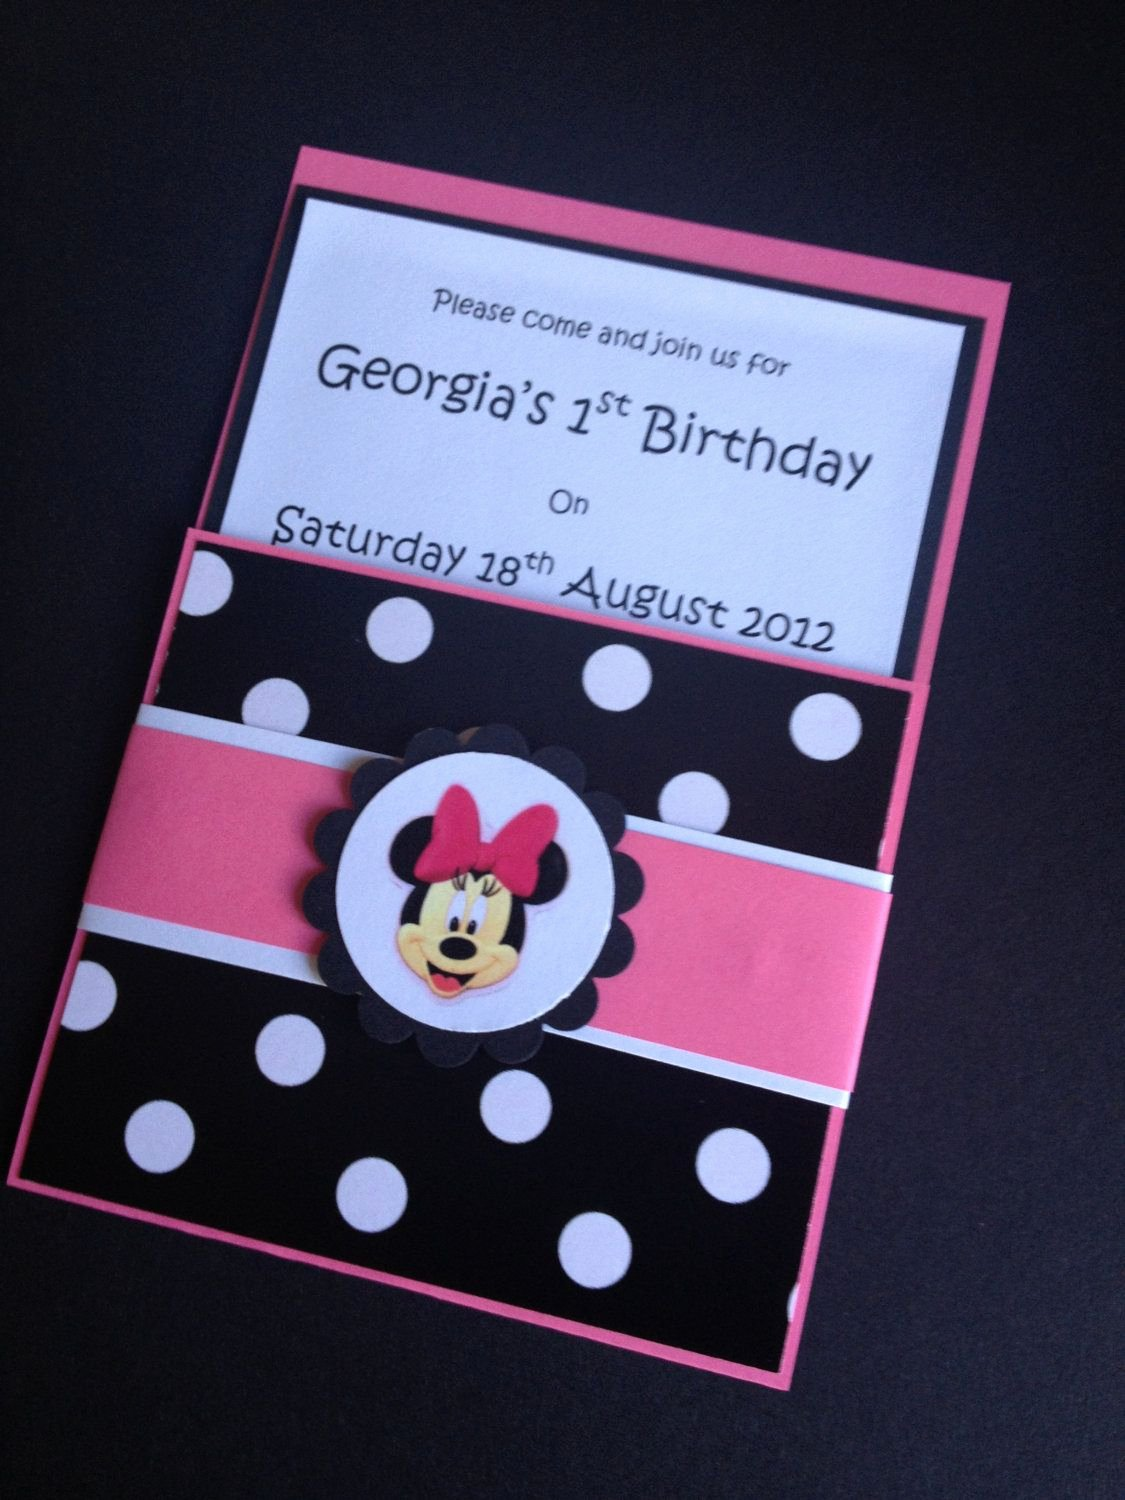 Homemade Minnie Mouse Invitations Awesome Handmade Pink Black Minnie Mouse Party Invitations